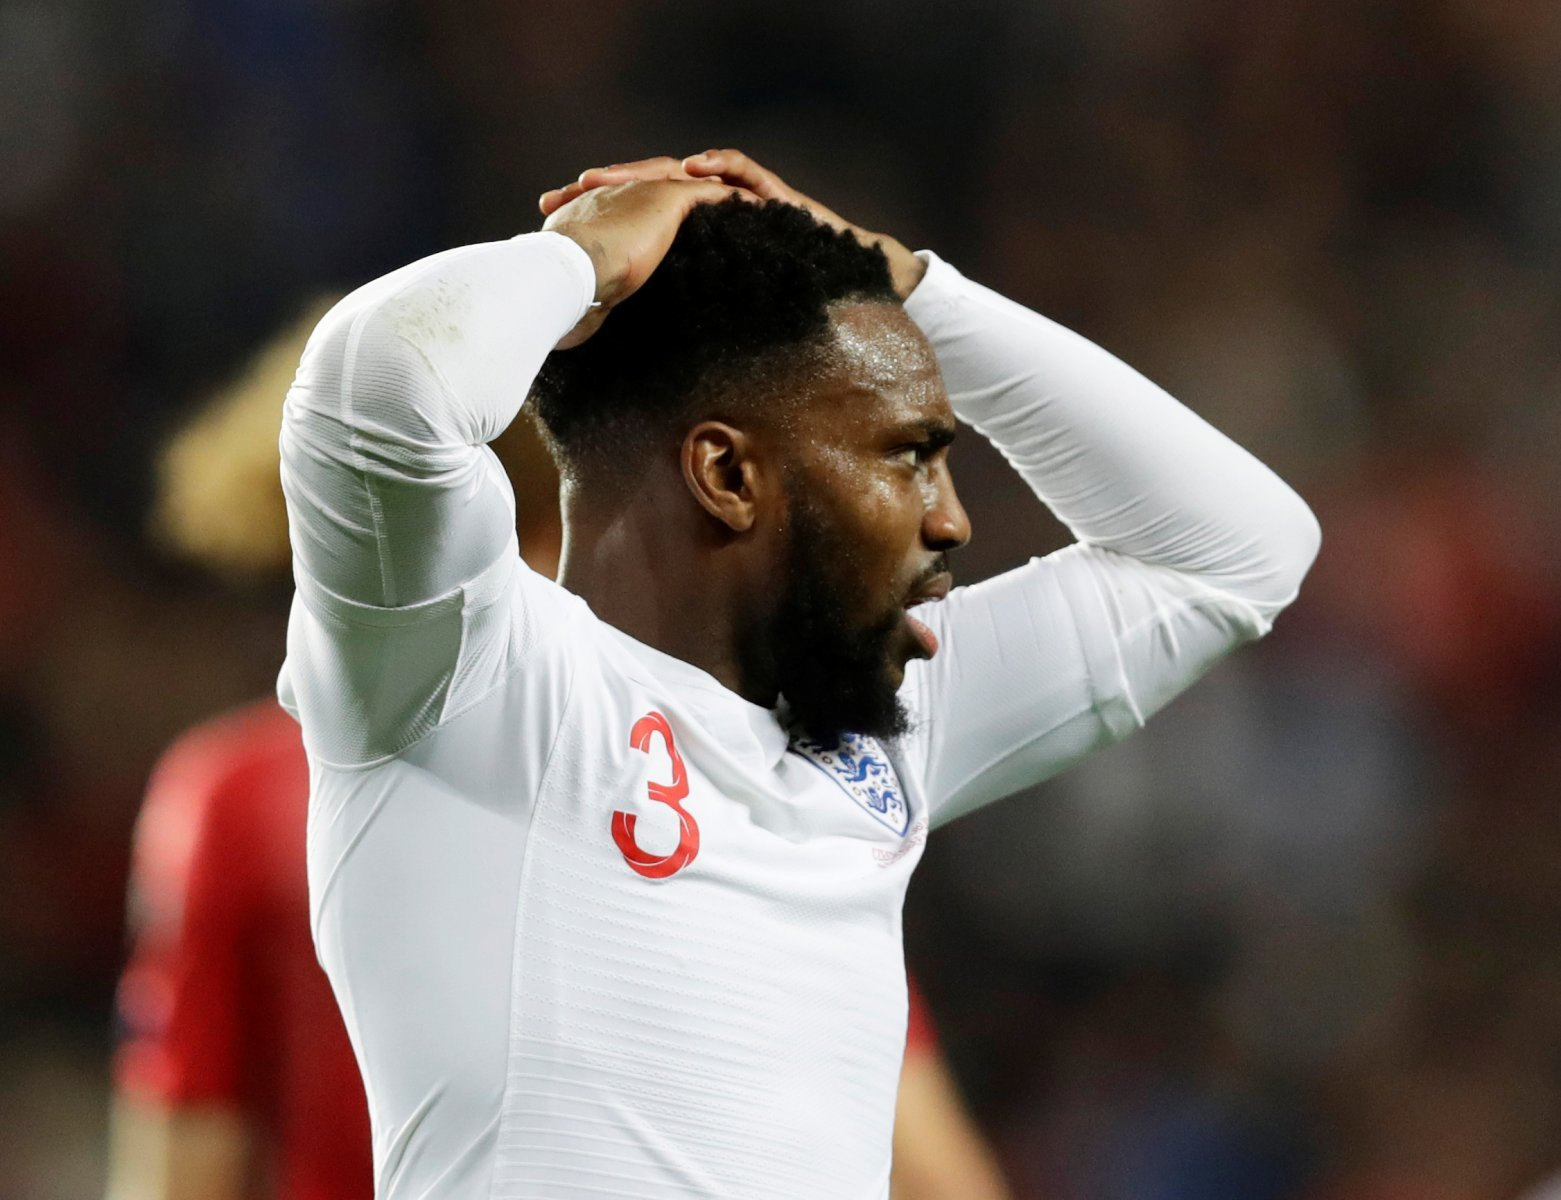 Tottenham Hotspur: Fans were in full agreement with Roy Keane's assessment on Danny Rose